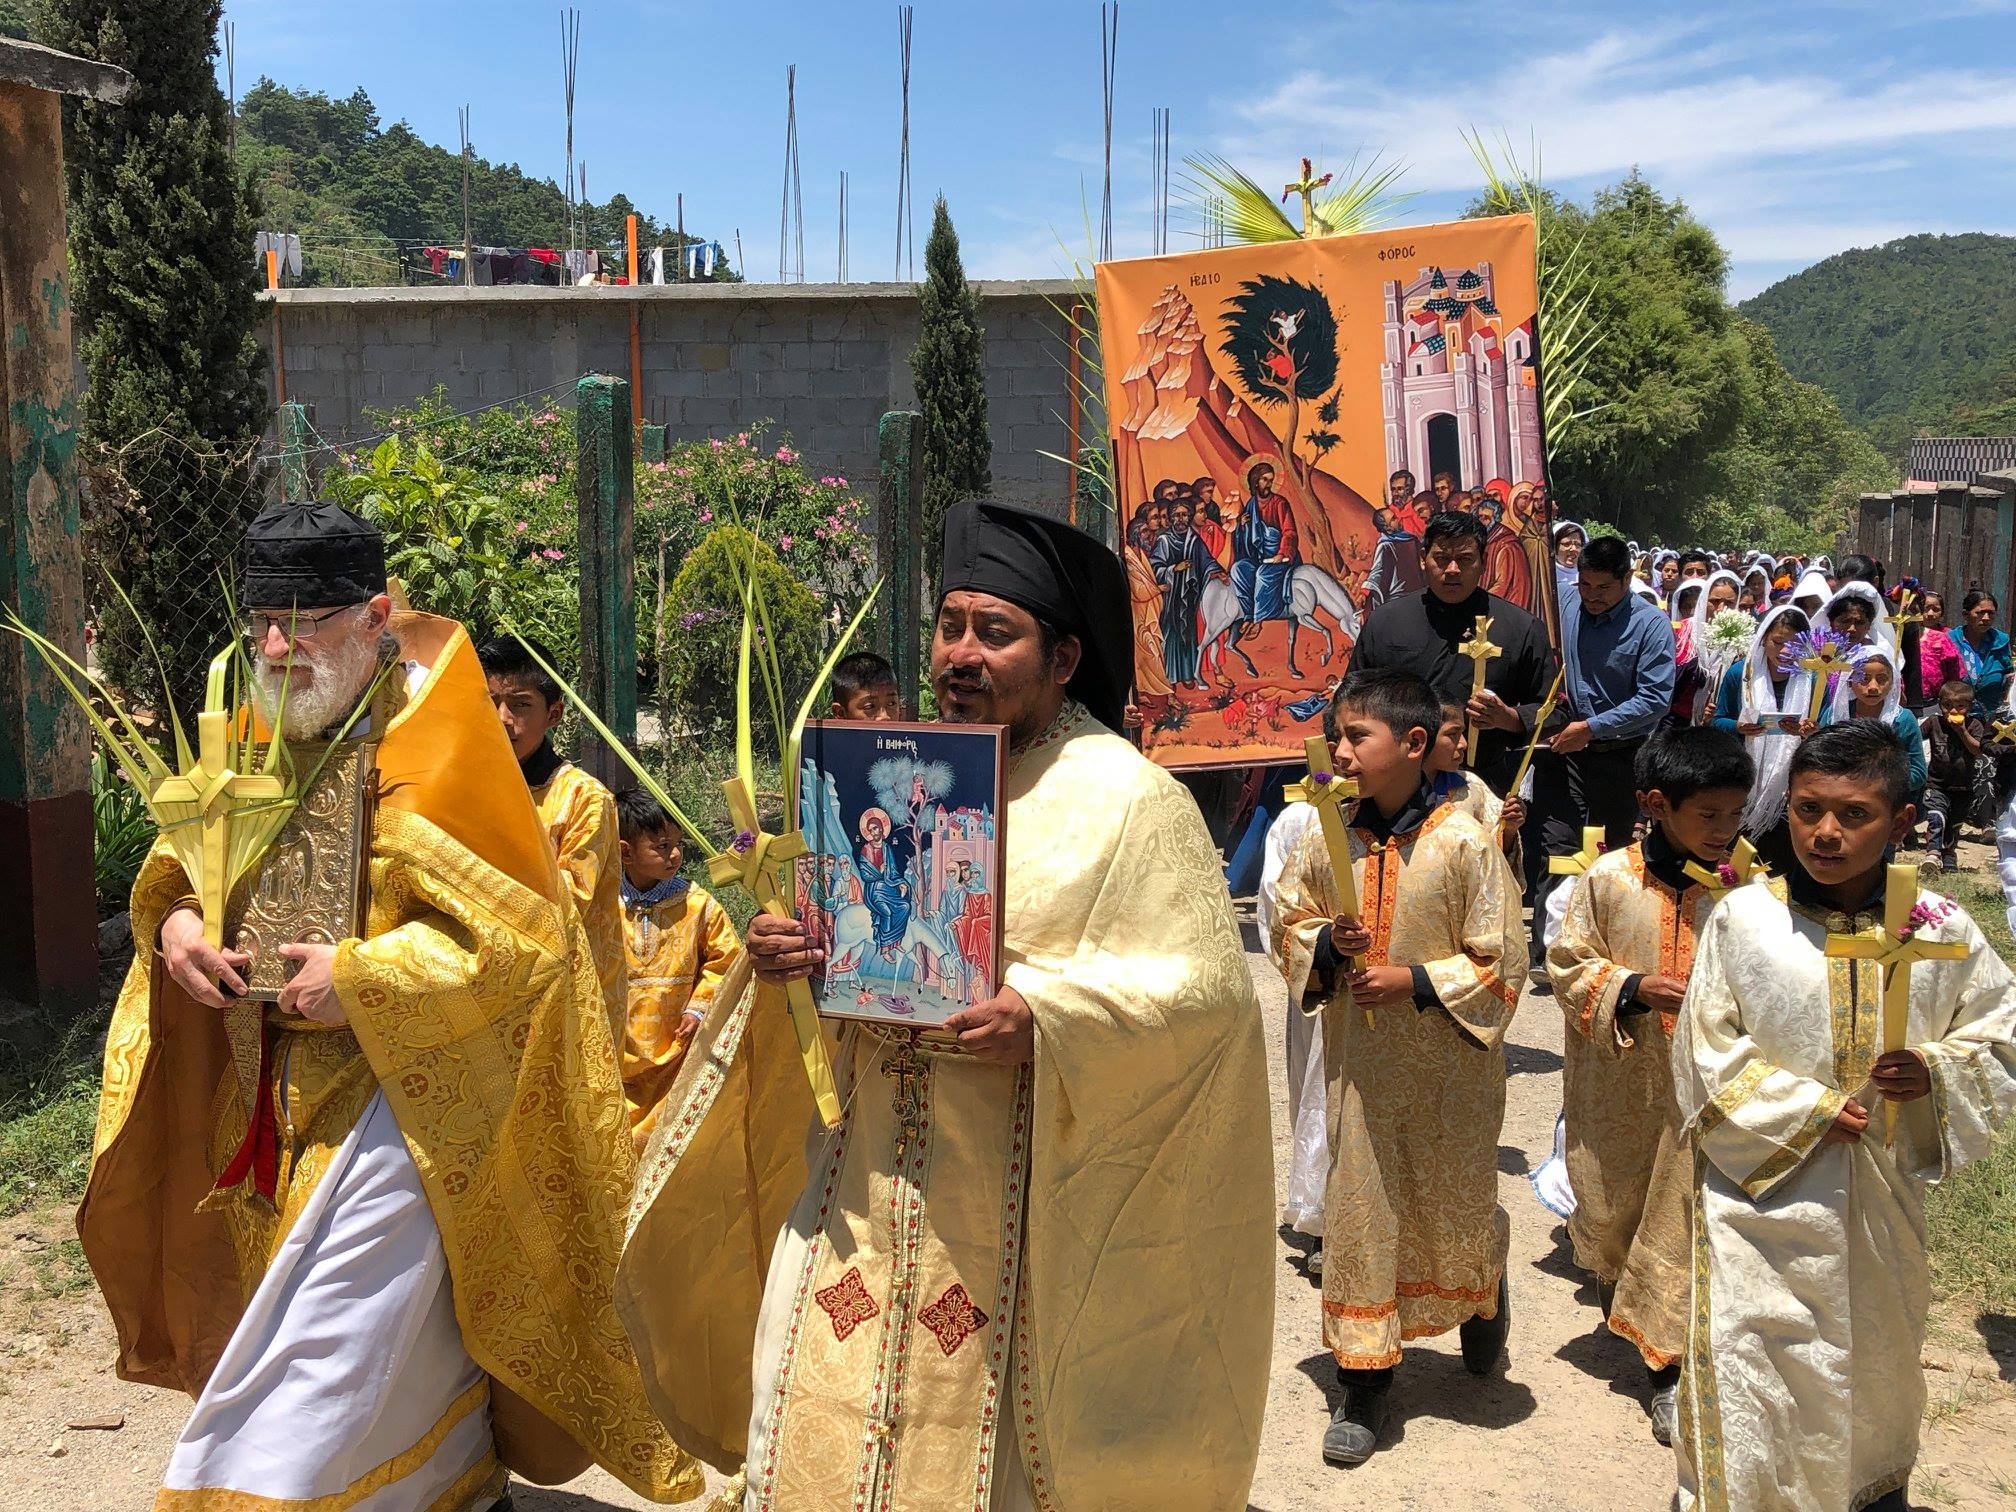 Procession on Palm Sunday through the village of Aguacate